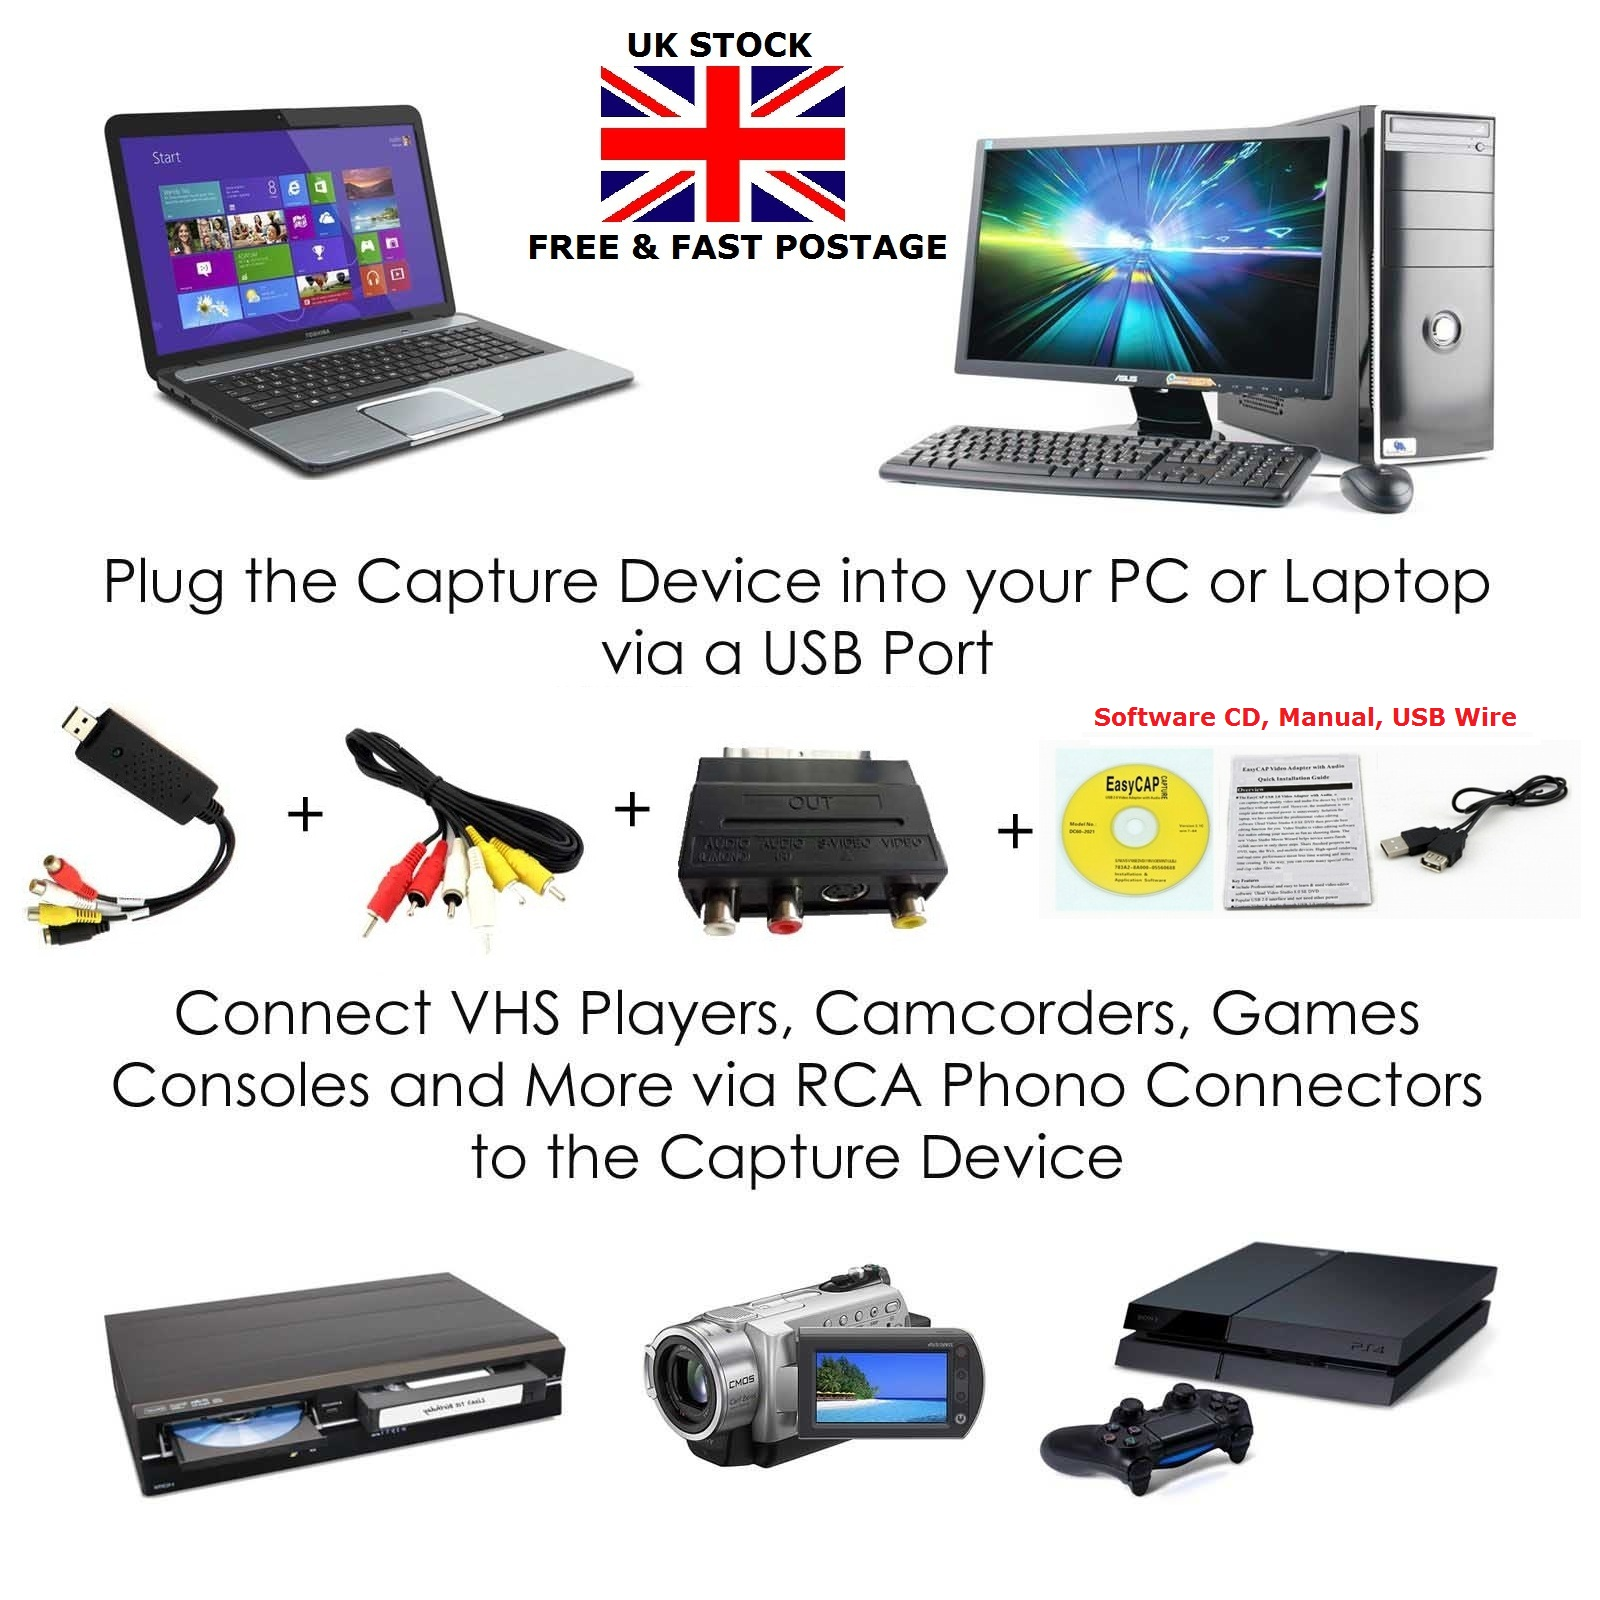 Details about UK USB VHS To DVD Audio Video Converter Adapter Full Scart  Capture RCA Cable Kit